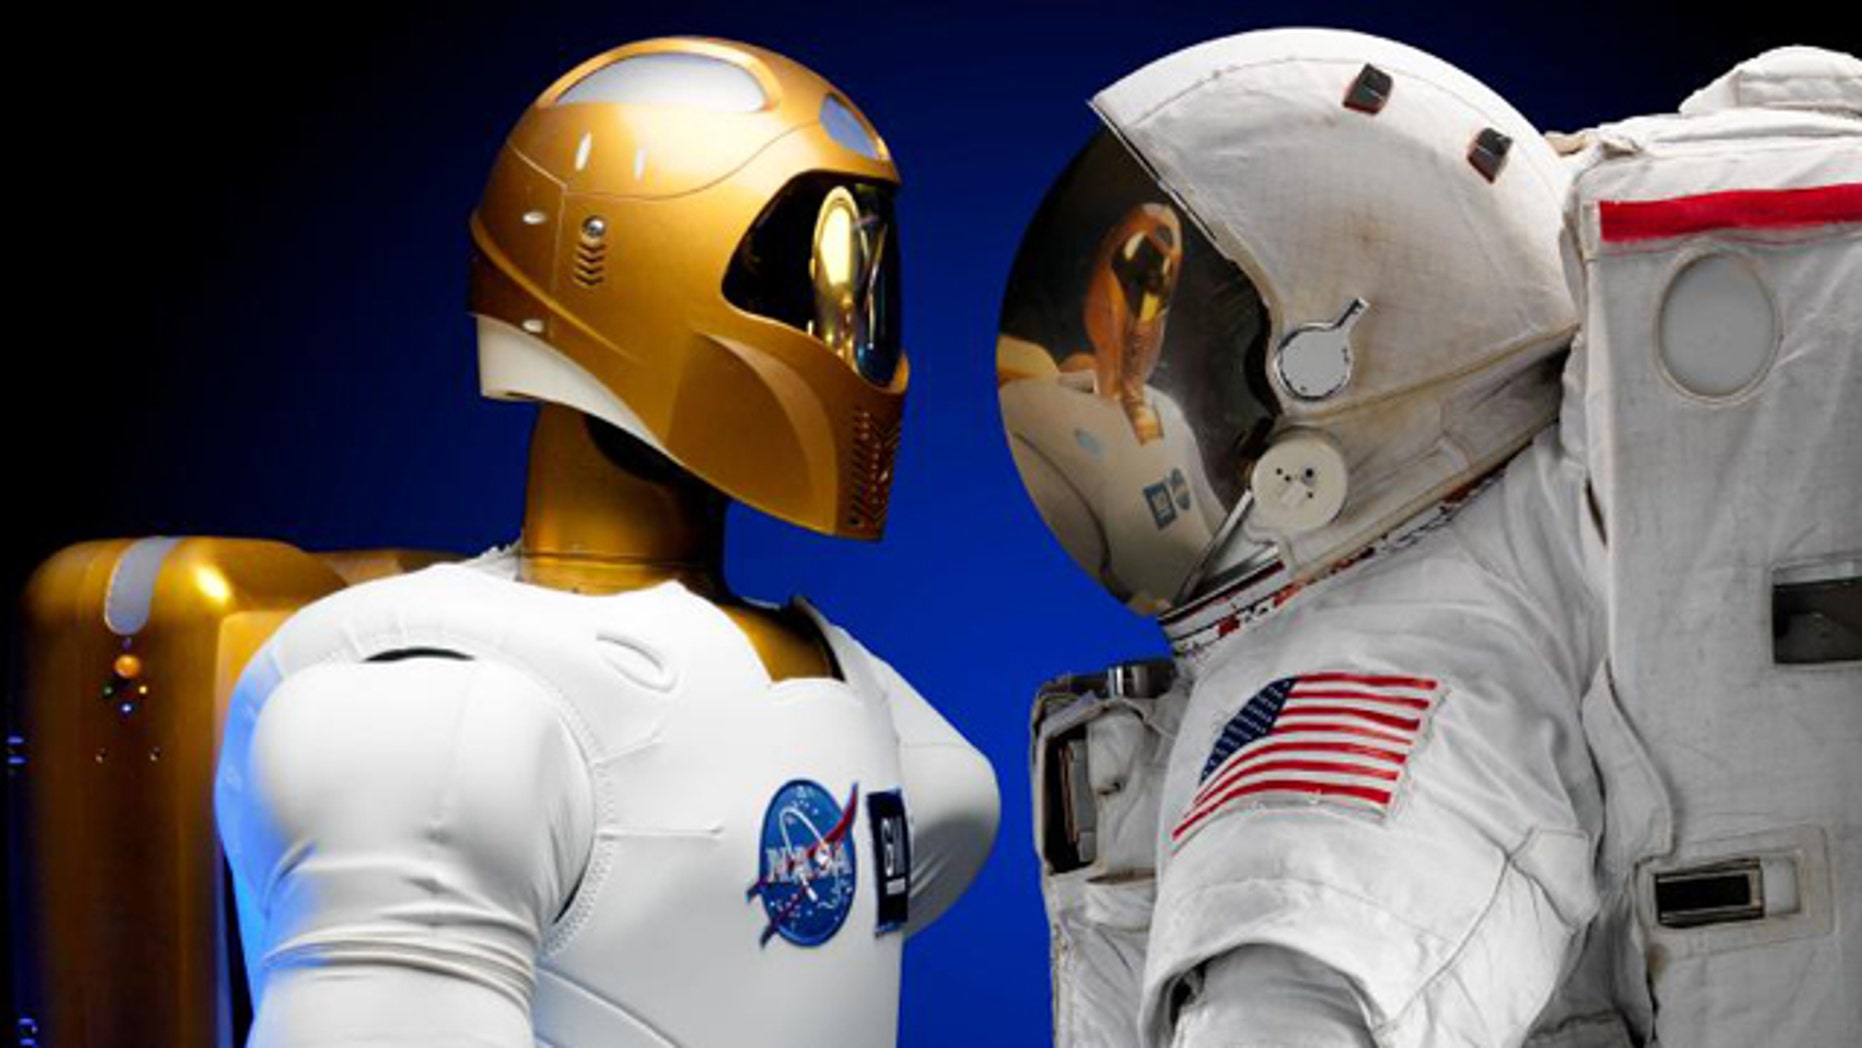 NASA's humans-in-space program may be may be suffering with the demise of the space shuttle program, but the space agency's robots-in-space program is alive and well. Meet Robonaut 2.